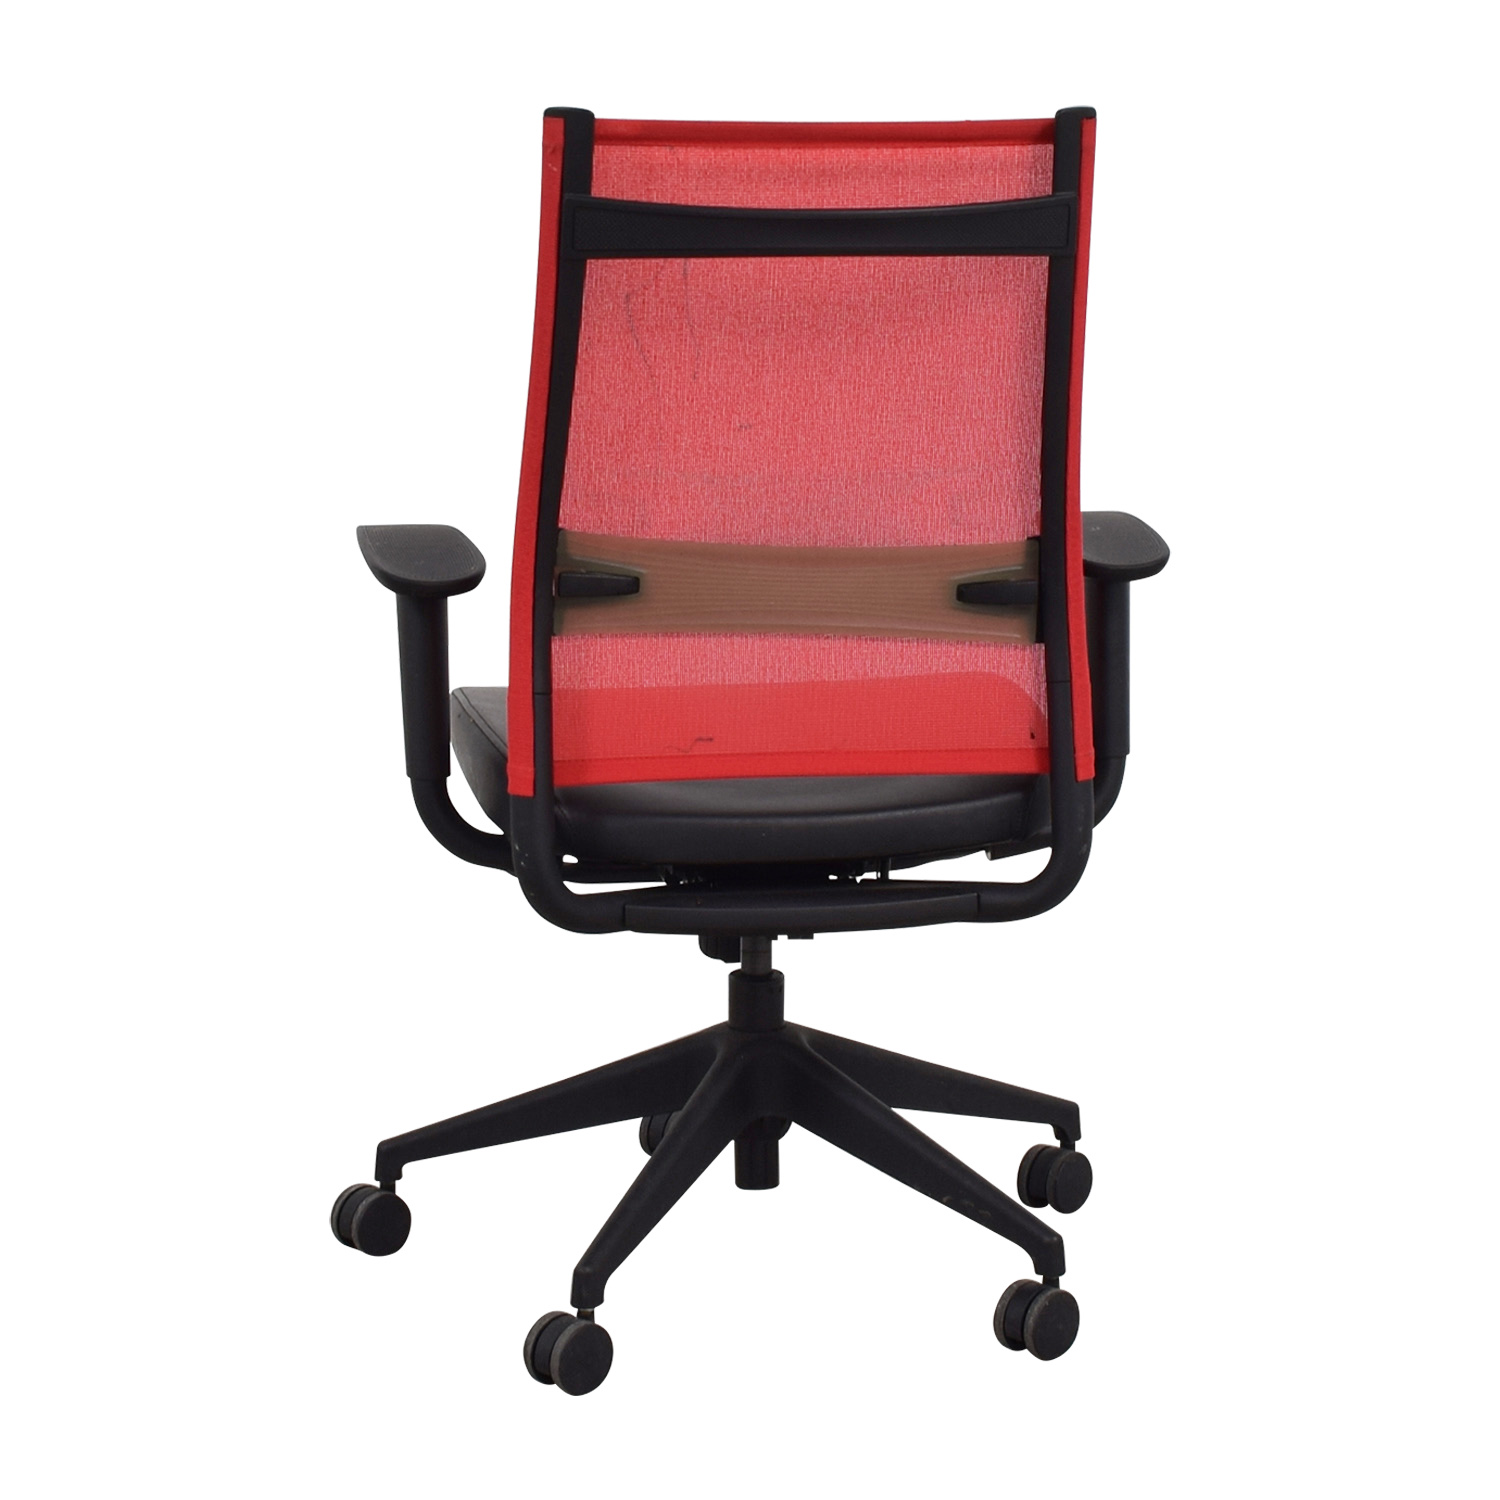 SitOnIt Red Office Chair SitOnIt